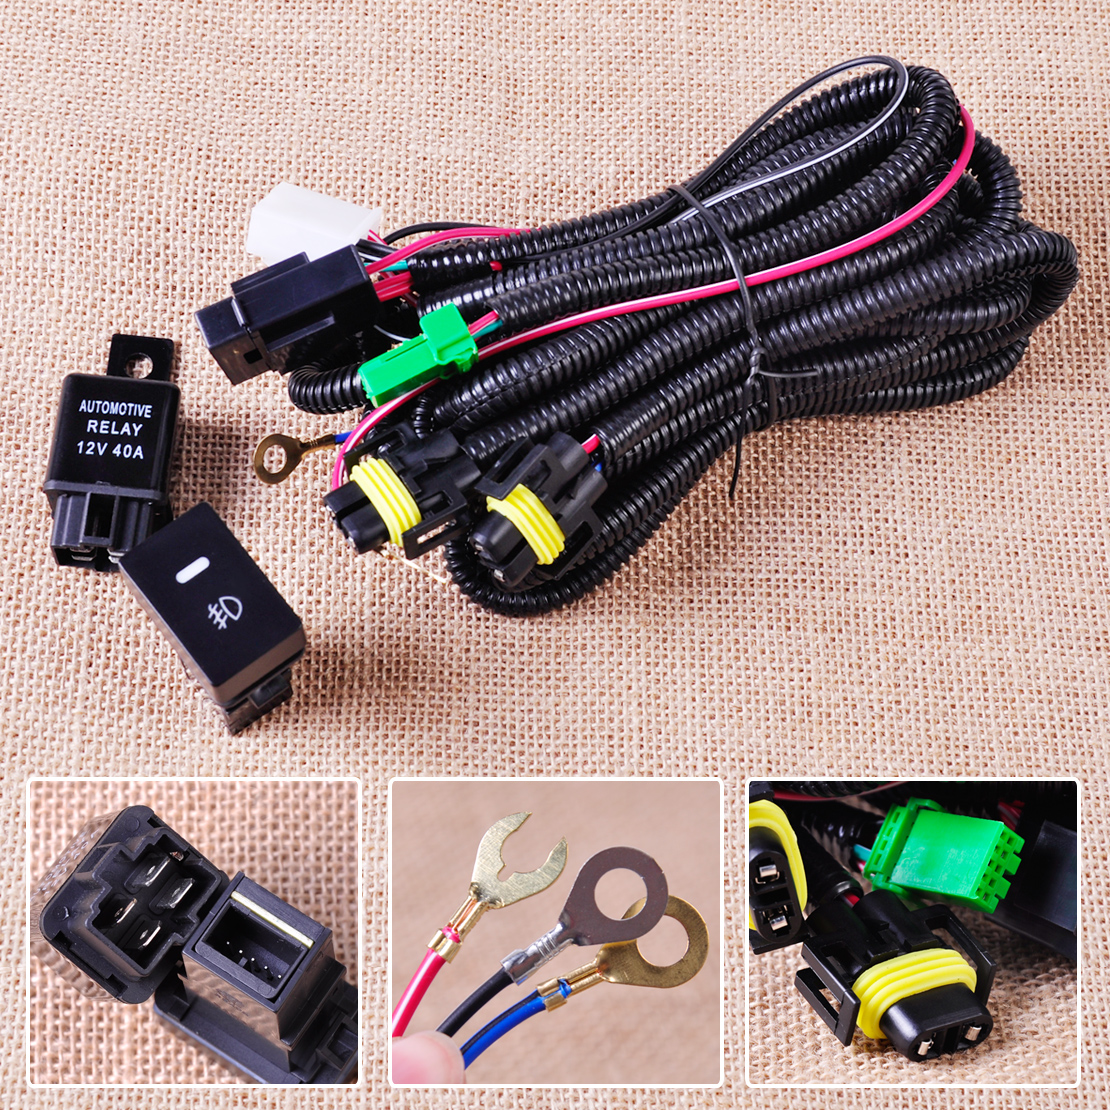 h11 fog light wiring harness smart wiring diagrams \u2022 piaa light wiring diagram new wiring harness socket switch for h11 fog light lamp ford focus rh ebay com piaa